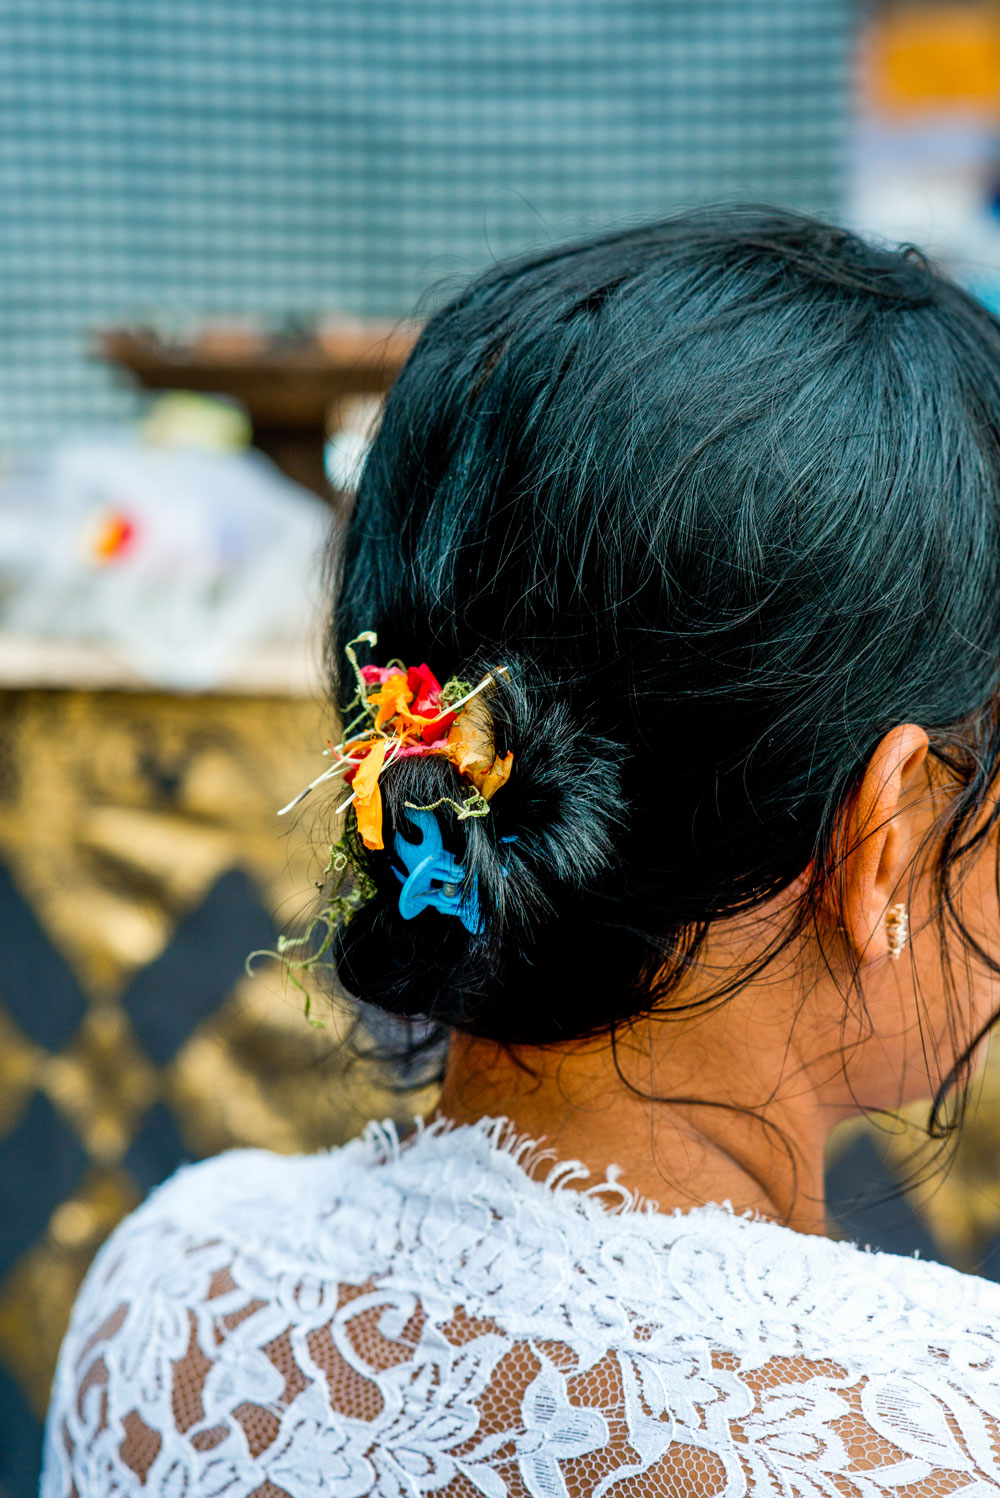 A paradise where women of all ages wear flowers in their hair.